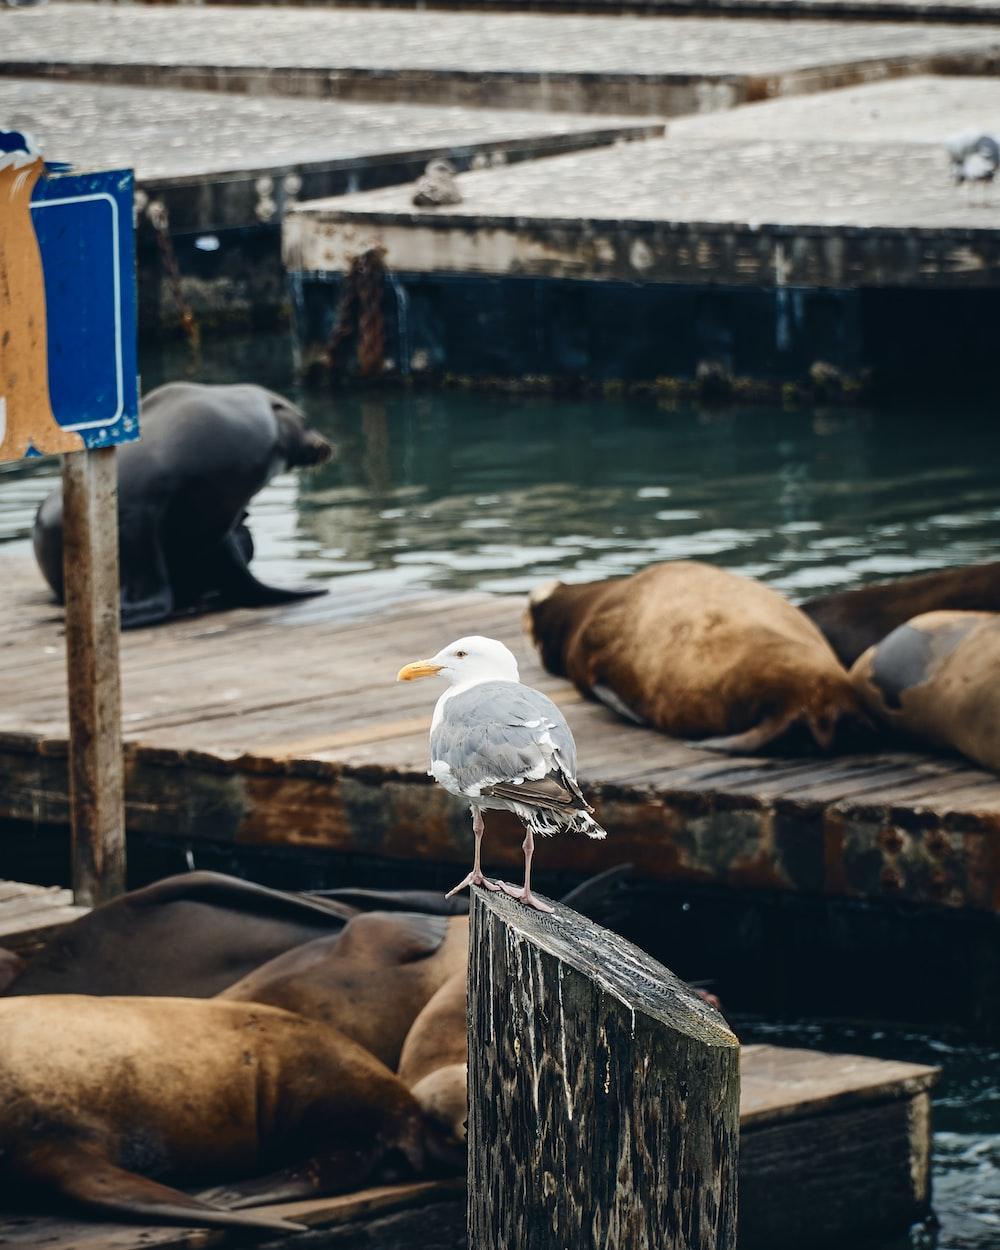 white bird on brown wooden dock during daytime